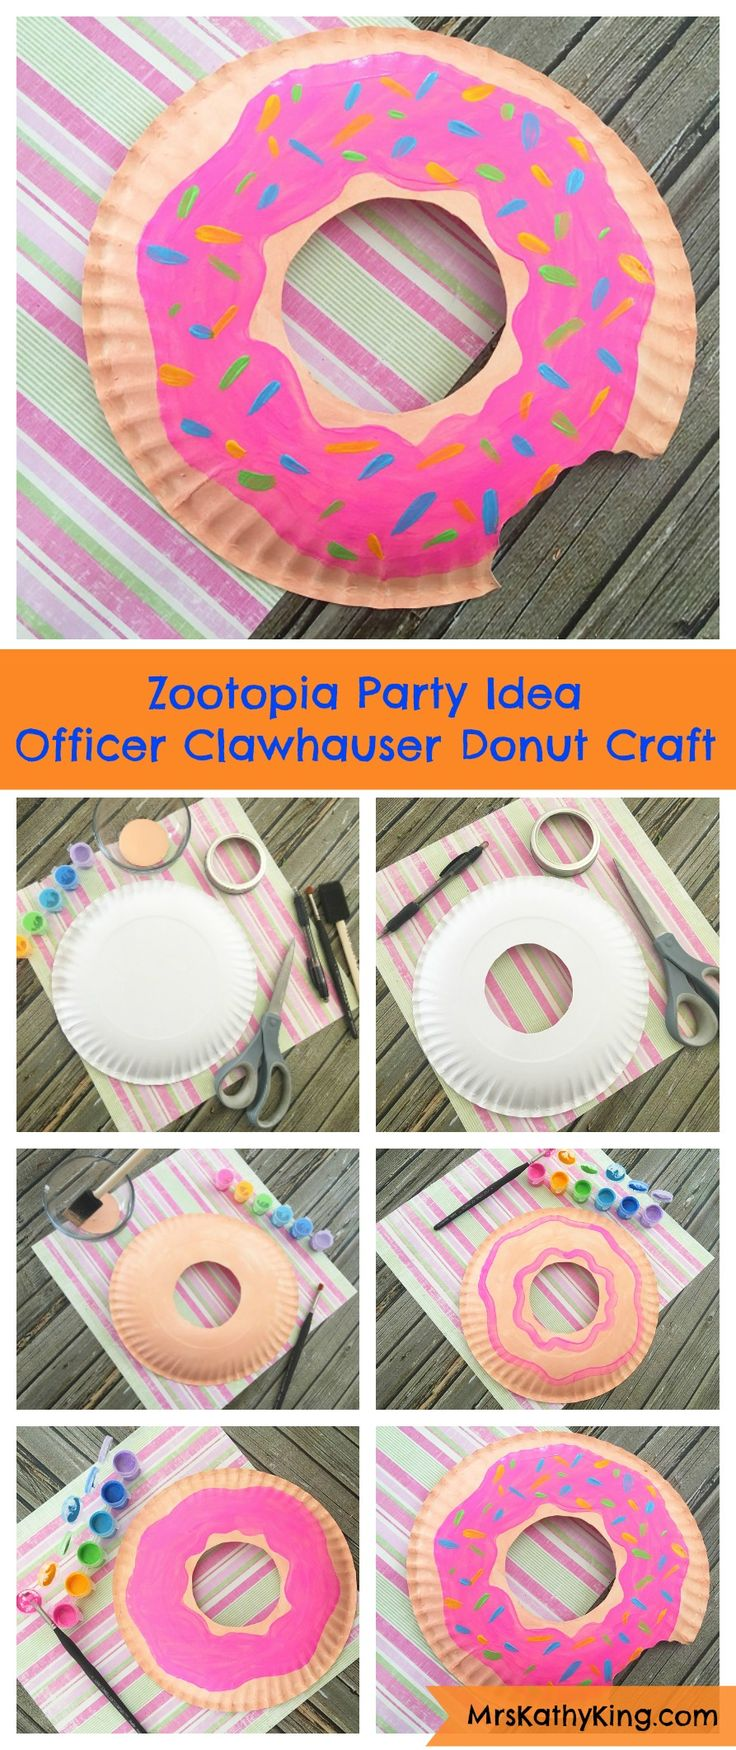 Zootopia Party Idea : Officer Clawhauser Donut Craft